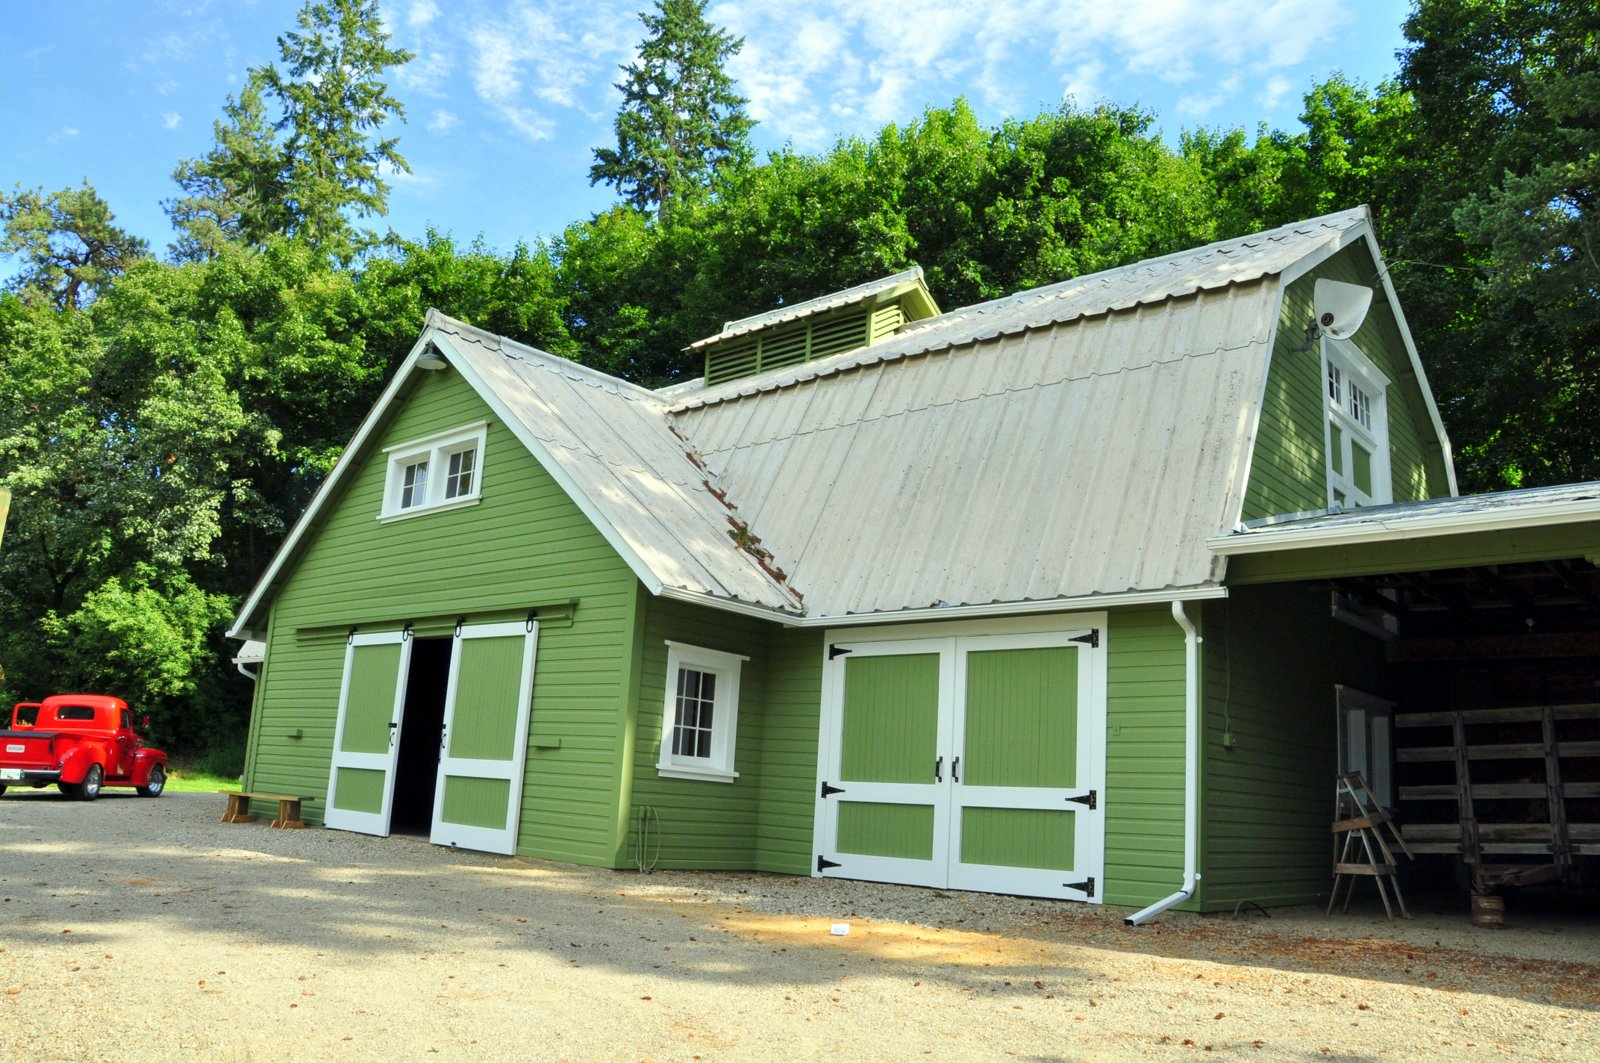 1926 Coldstream Heritage Barn Restoration